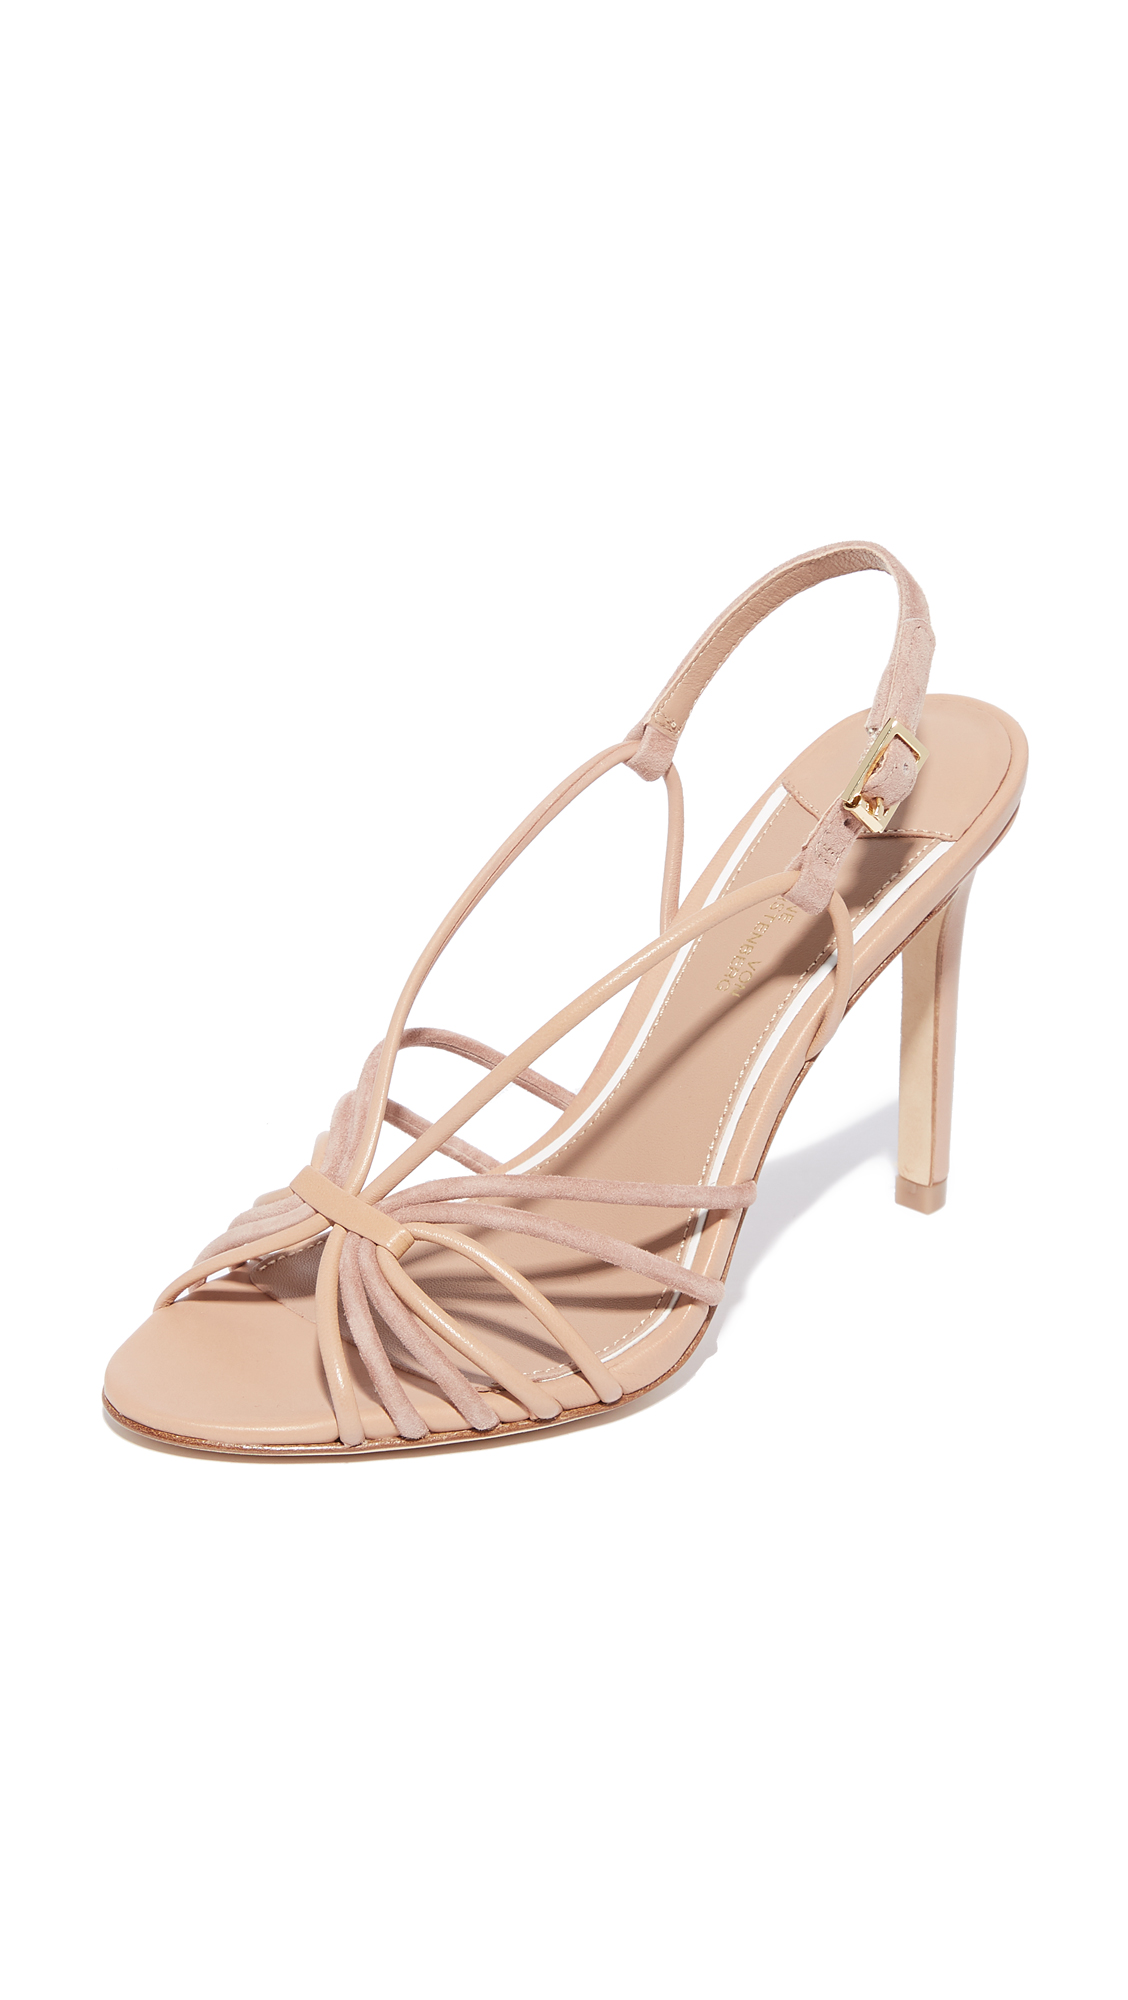 Diane von Furstenberg Milena Strappy Sandals - Powder